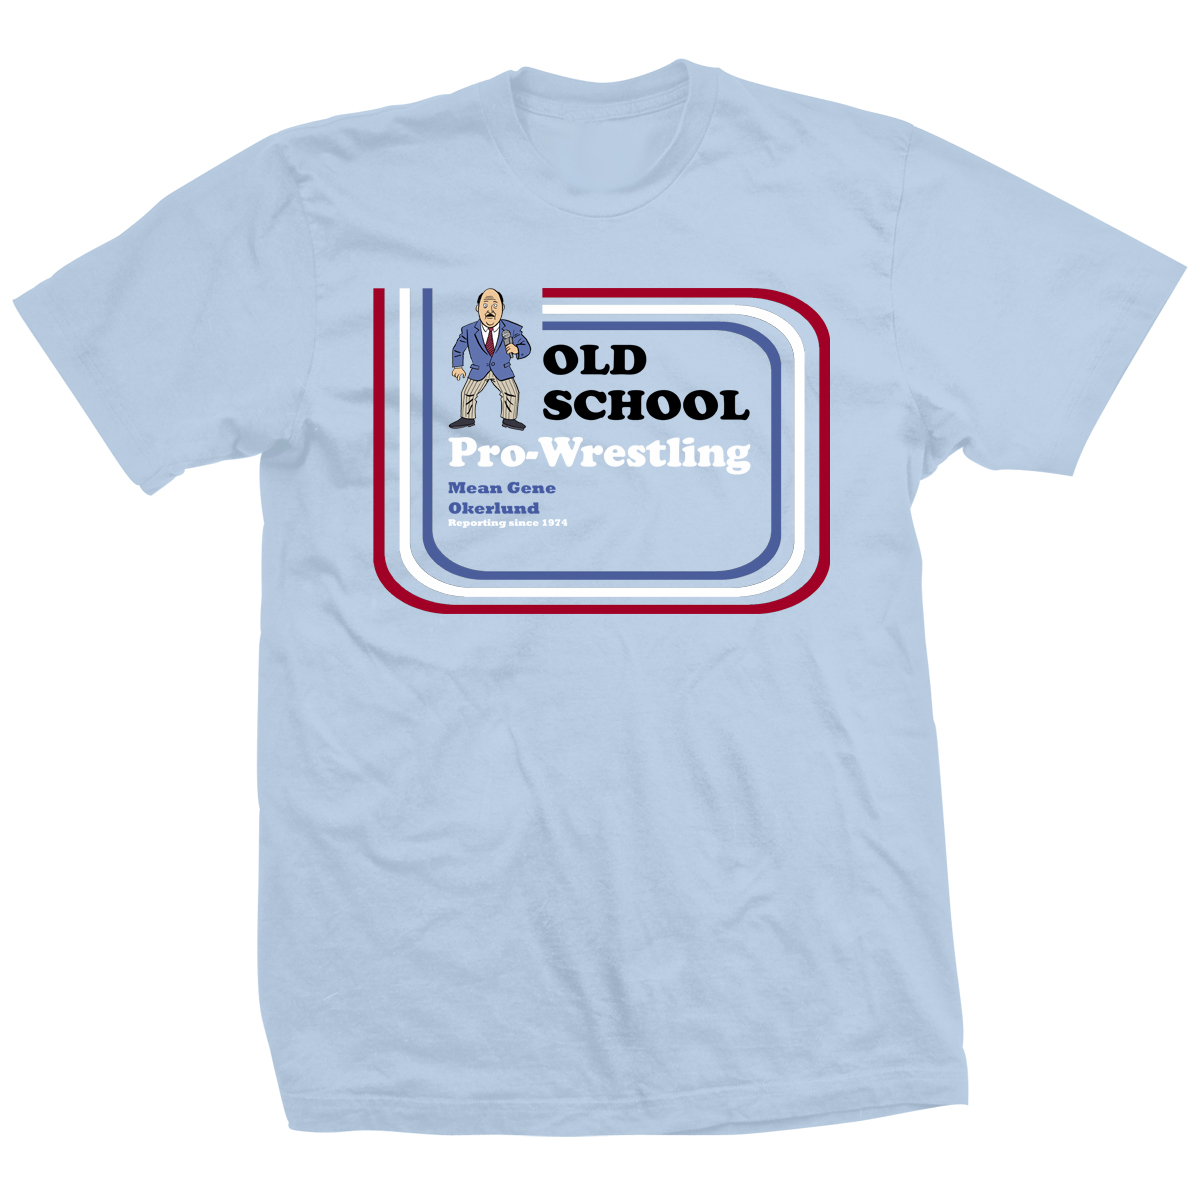 Mean Gene Old School T-shirt